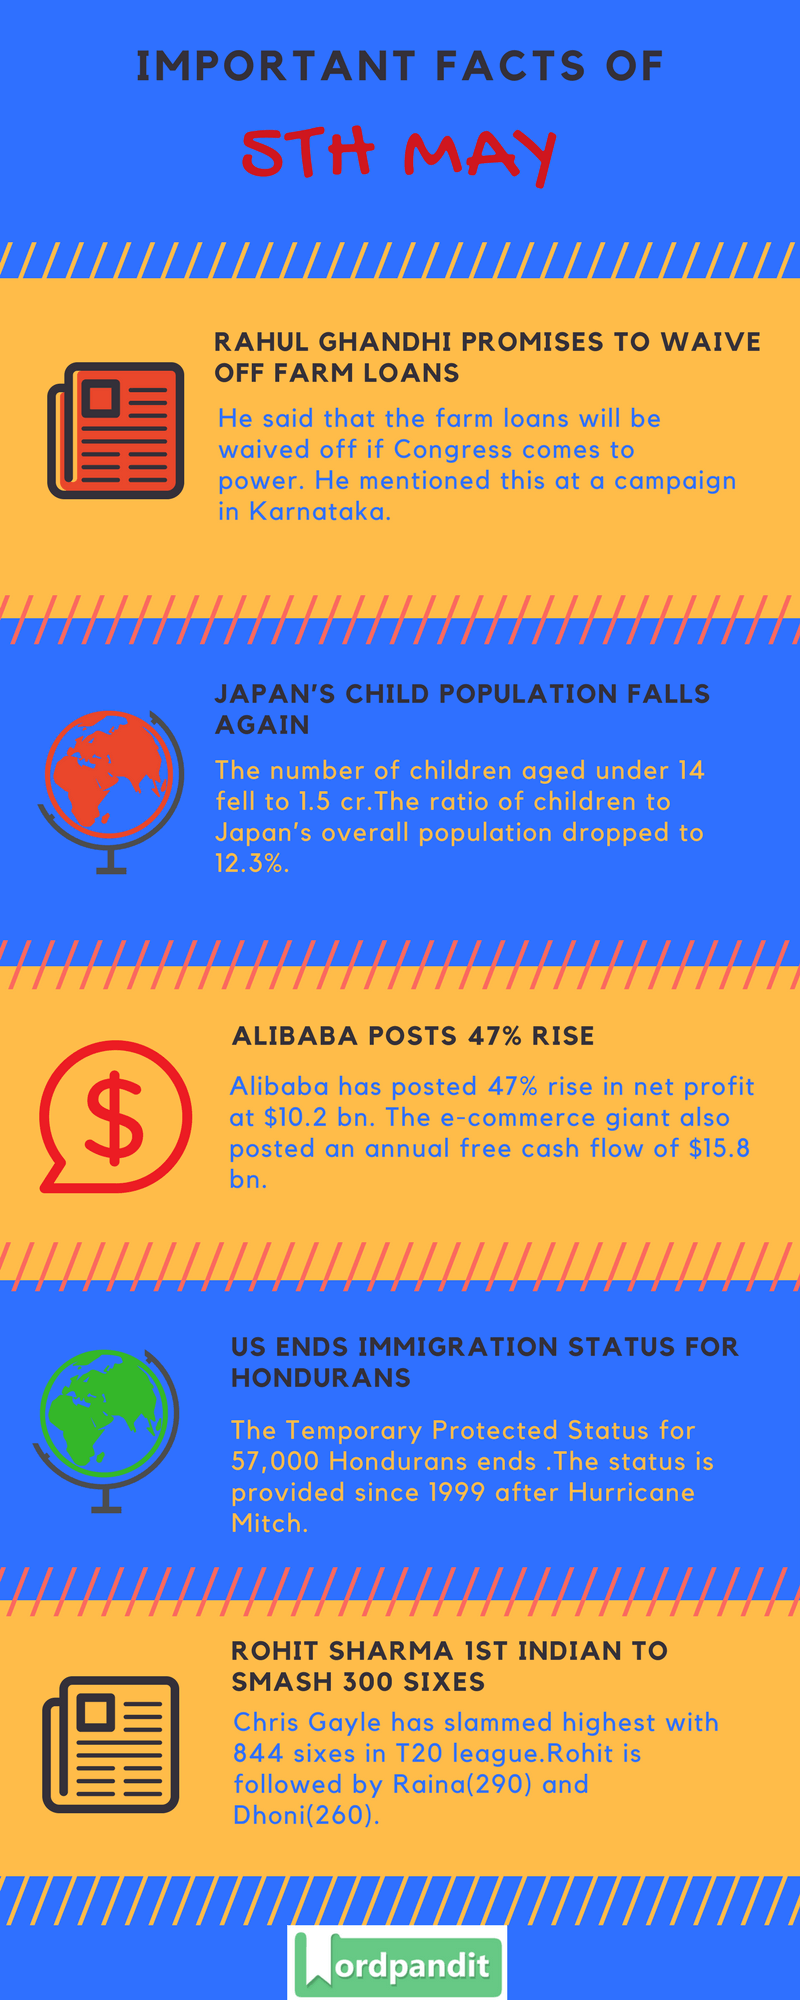 Daily Current Affairs 5 May 2018 Current Affairs Quiz May 5 2018 Current Affairs Infographic